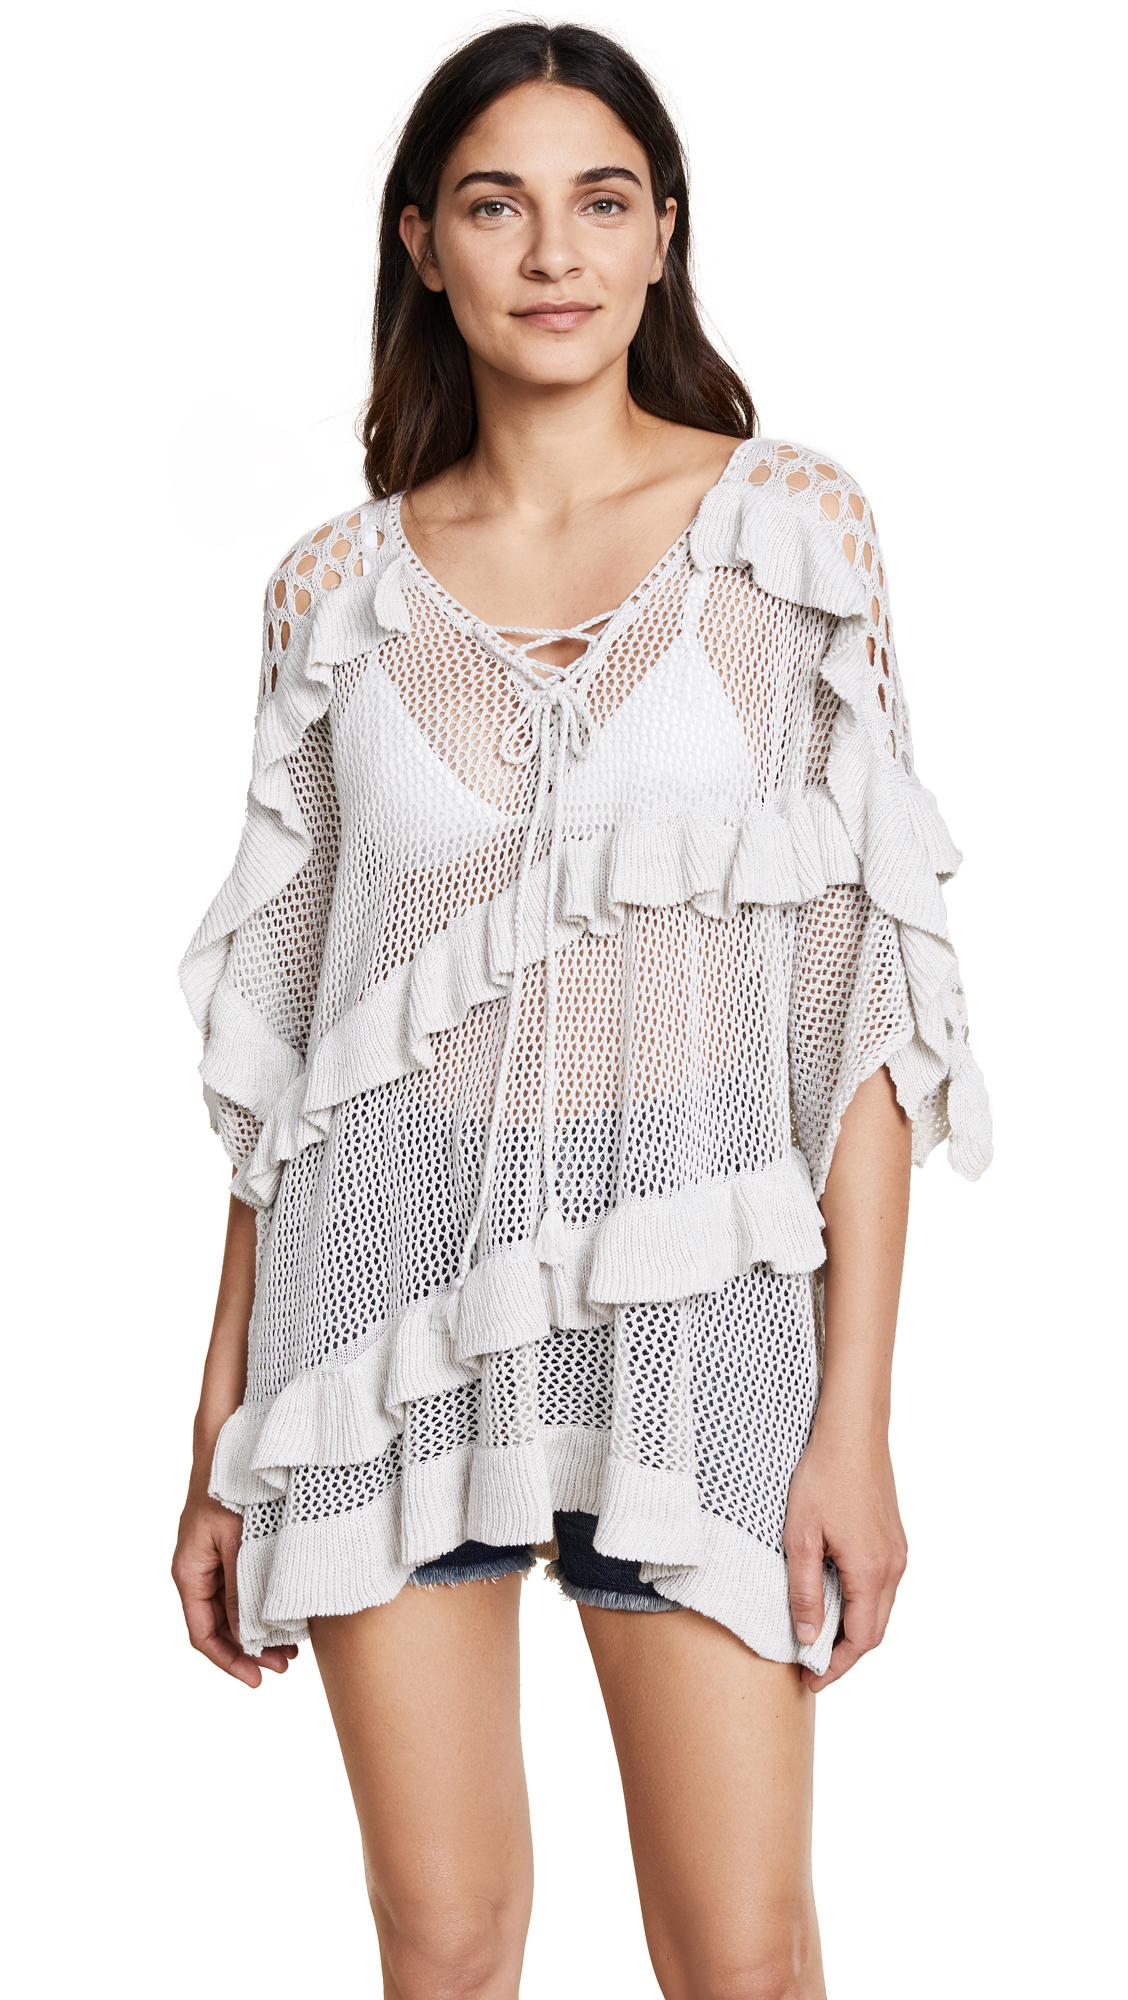 Suboo Years From Now Knit Caftan - White